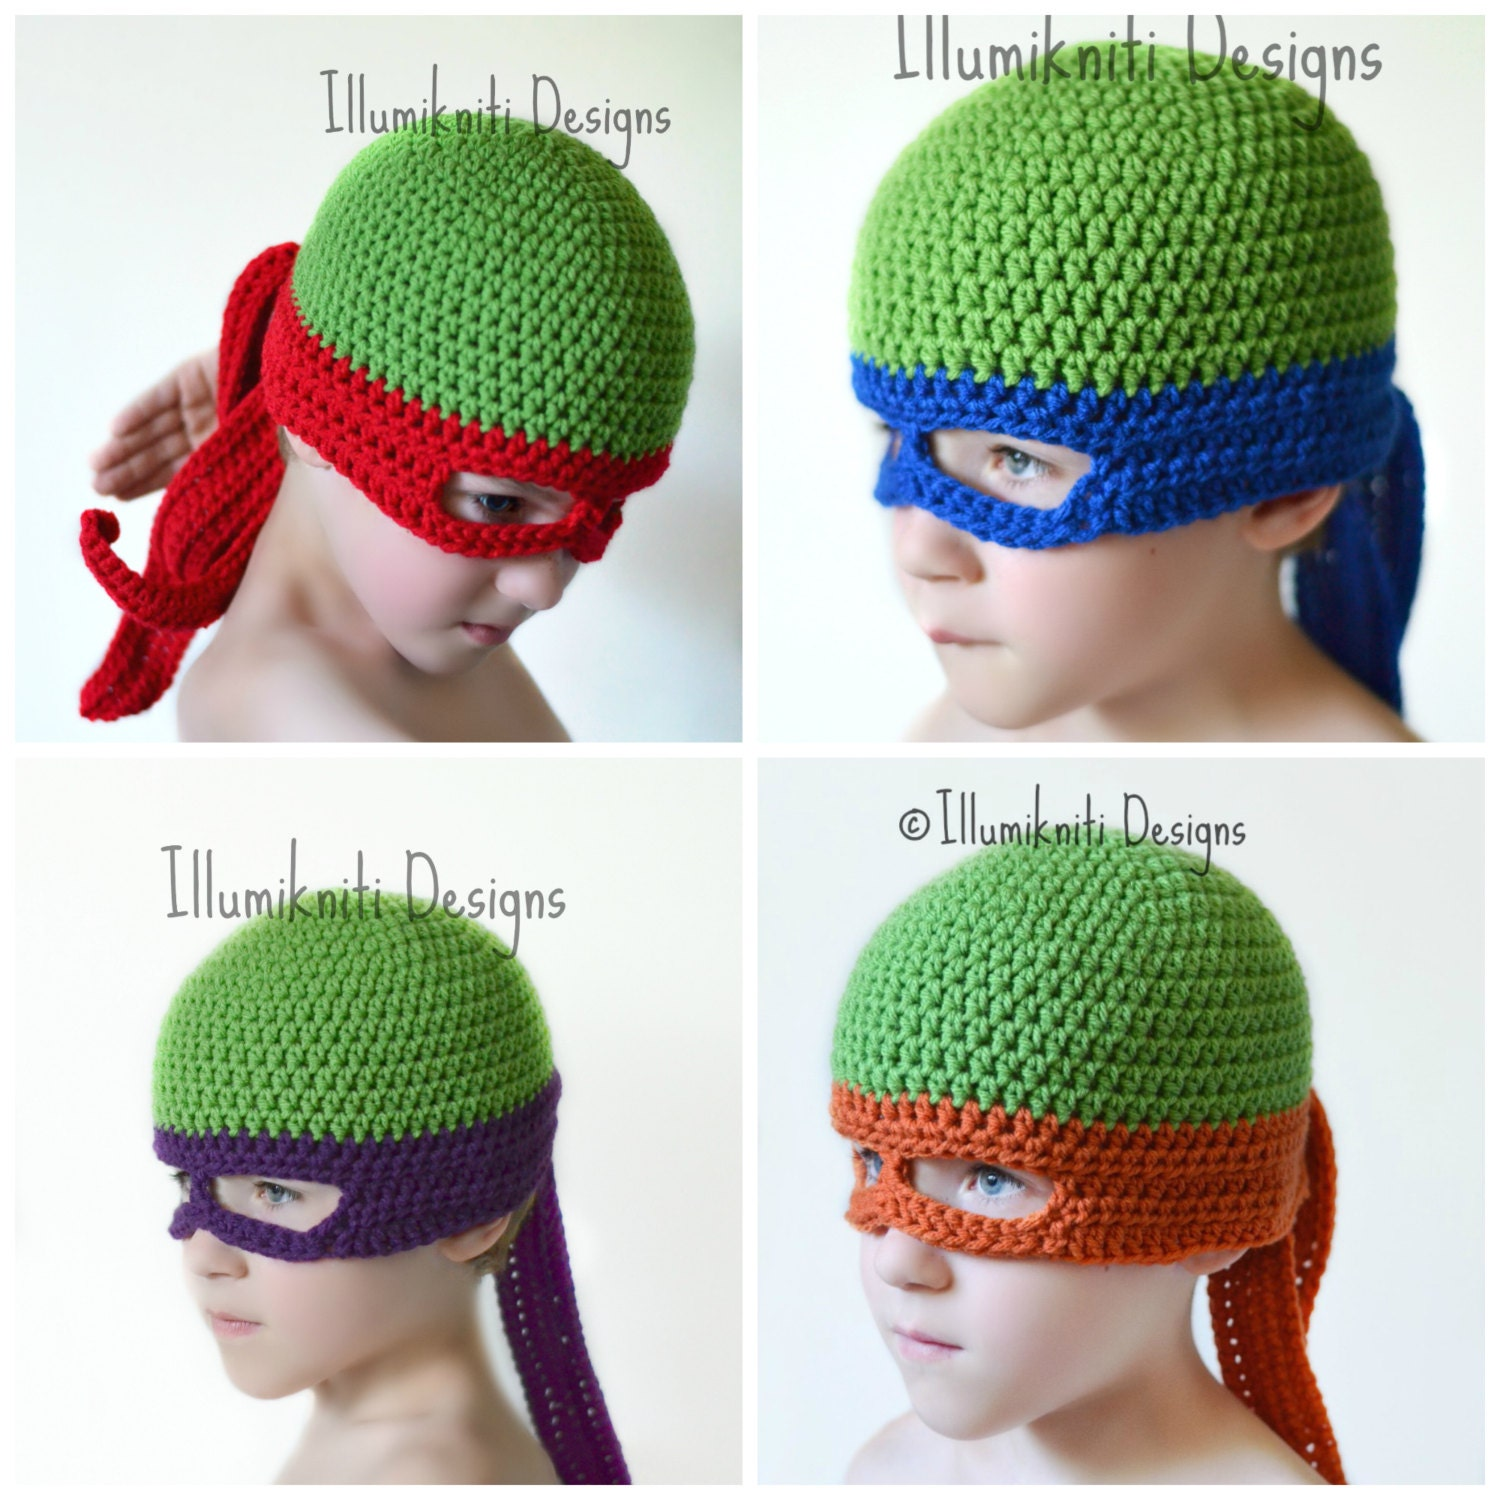 Crochet Ninja Turtle : Turtle Ninja Hat Crochet Fun Made to Order by illumiknitiDesign